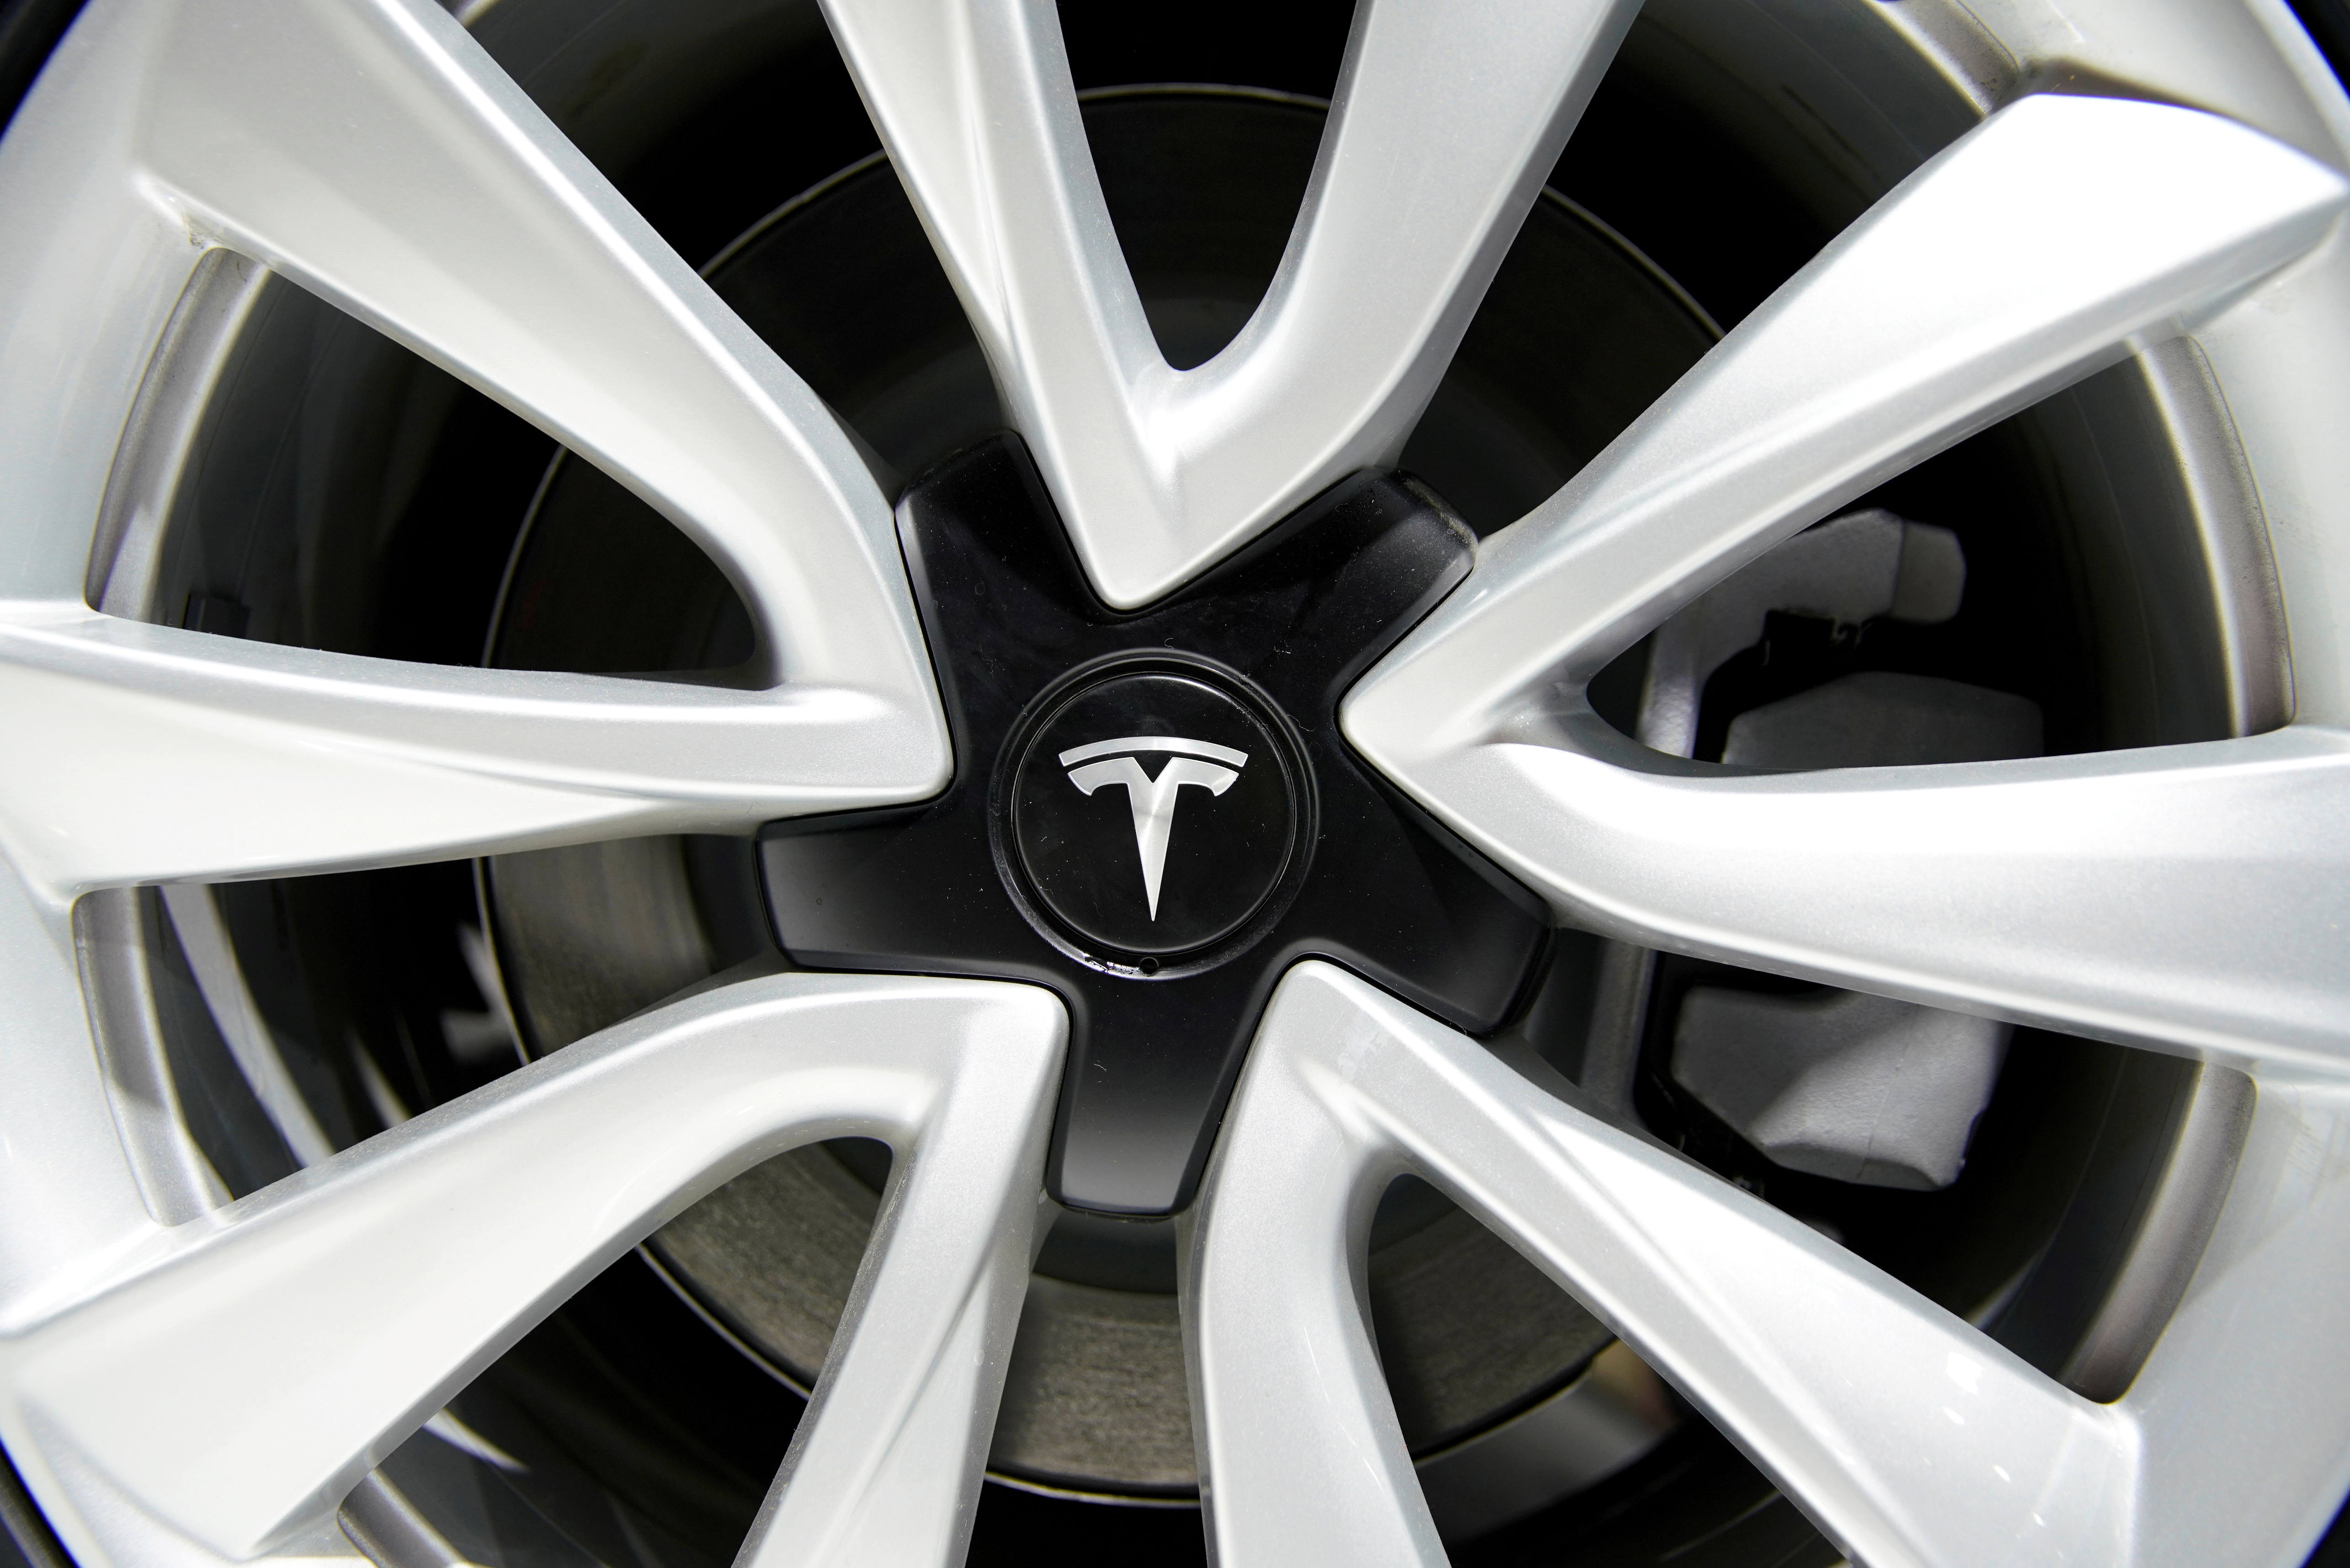 A Tesla logo is seen on a wheel rim during the media day for the Shanghai auto show in Shanghai, China April 16, 2019. REUTERS/Aly Song